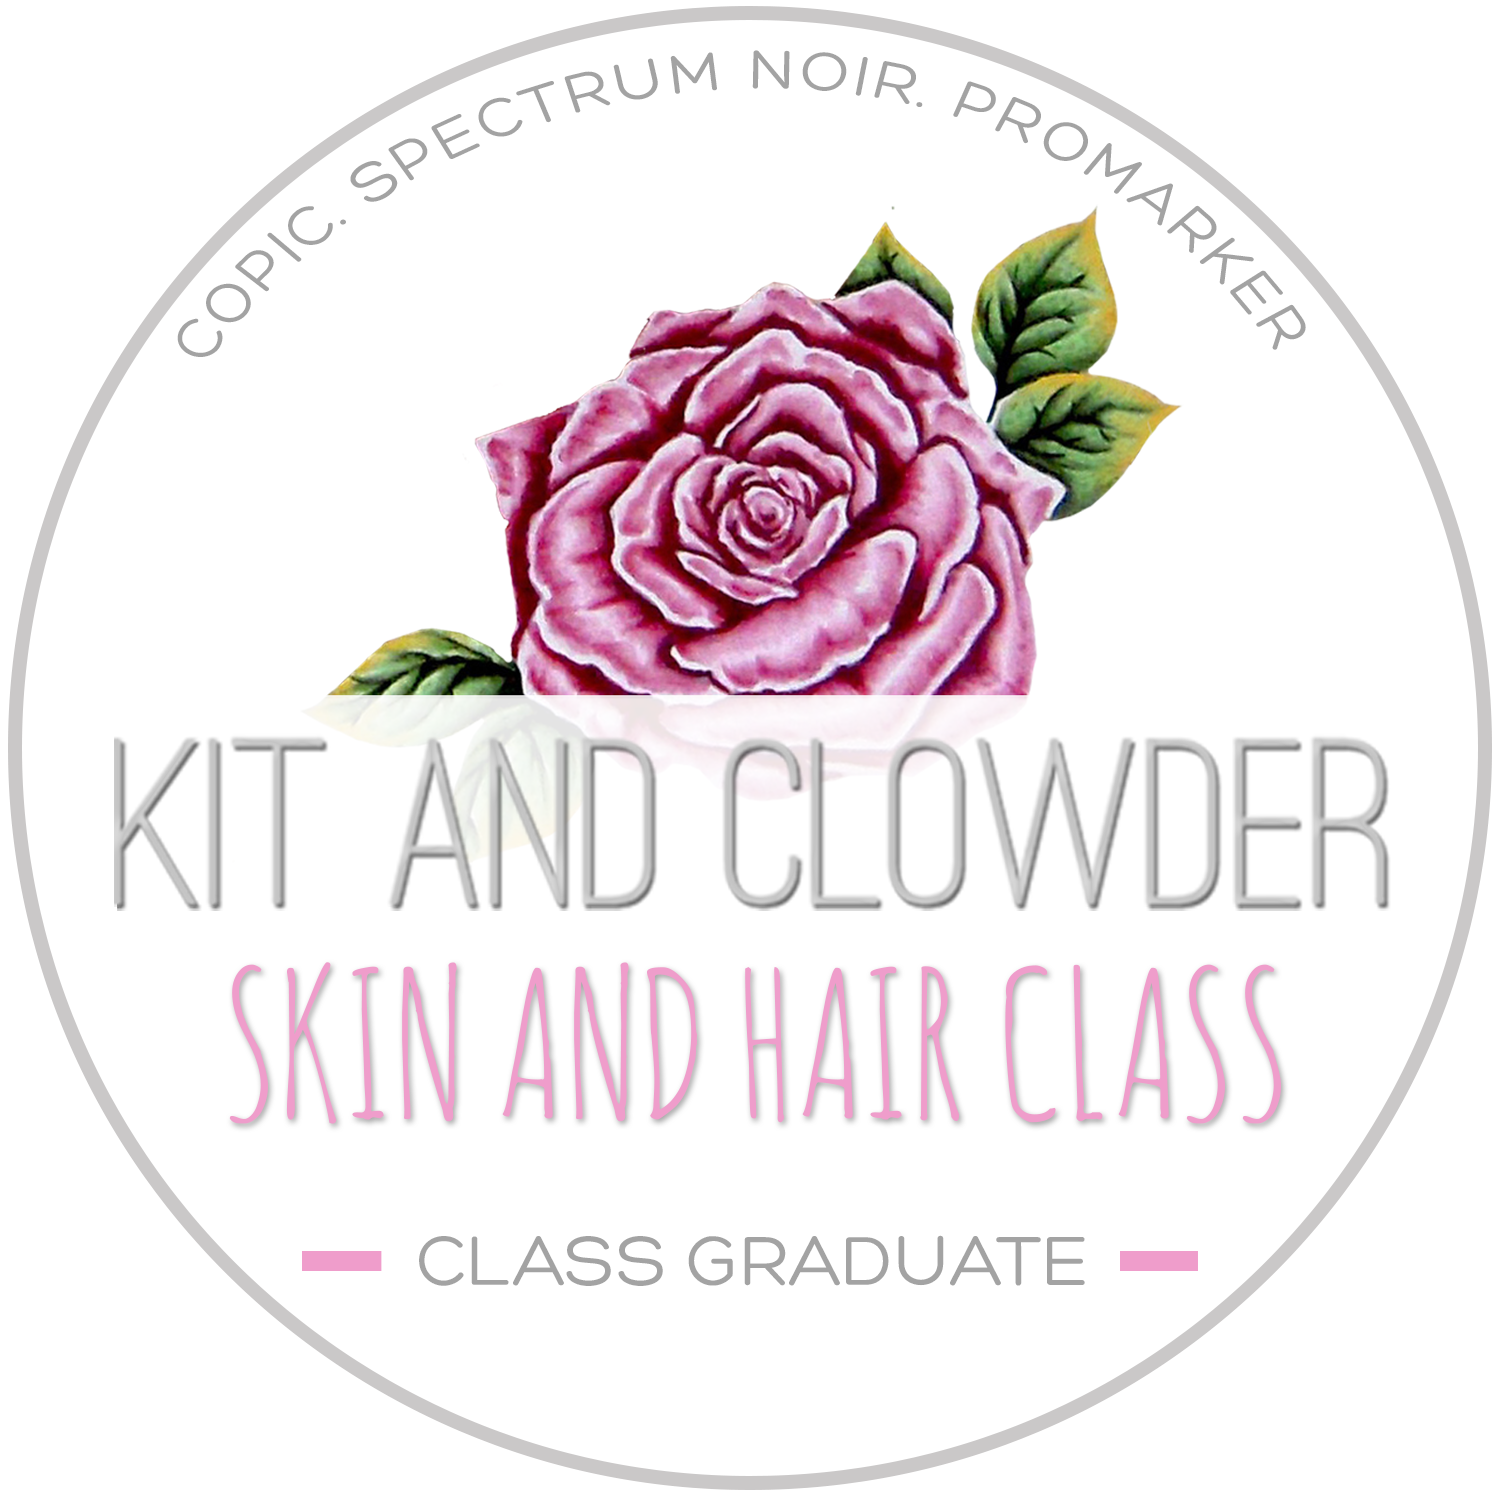 Graduate at Kit and Clowder